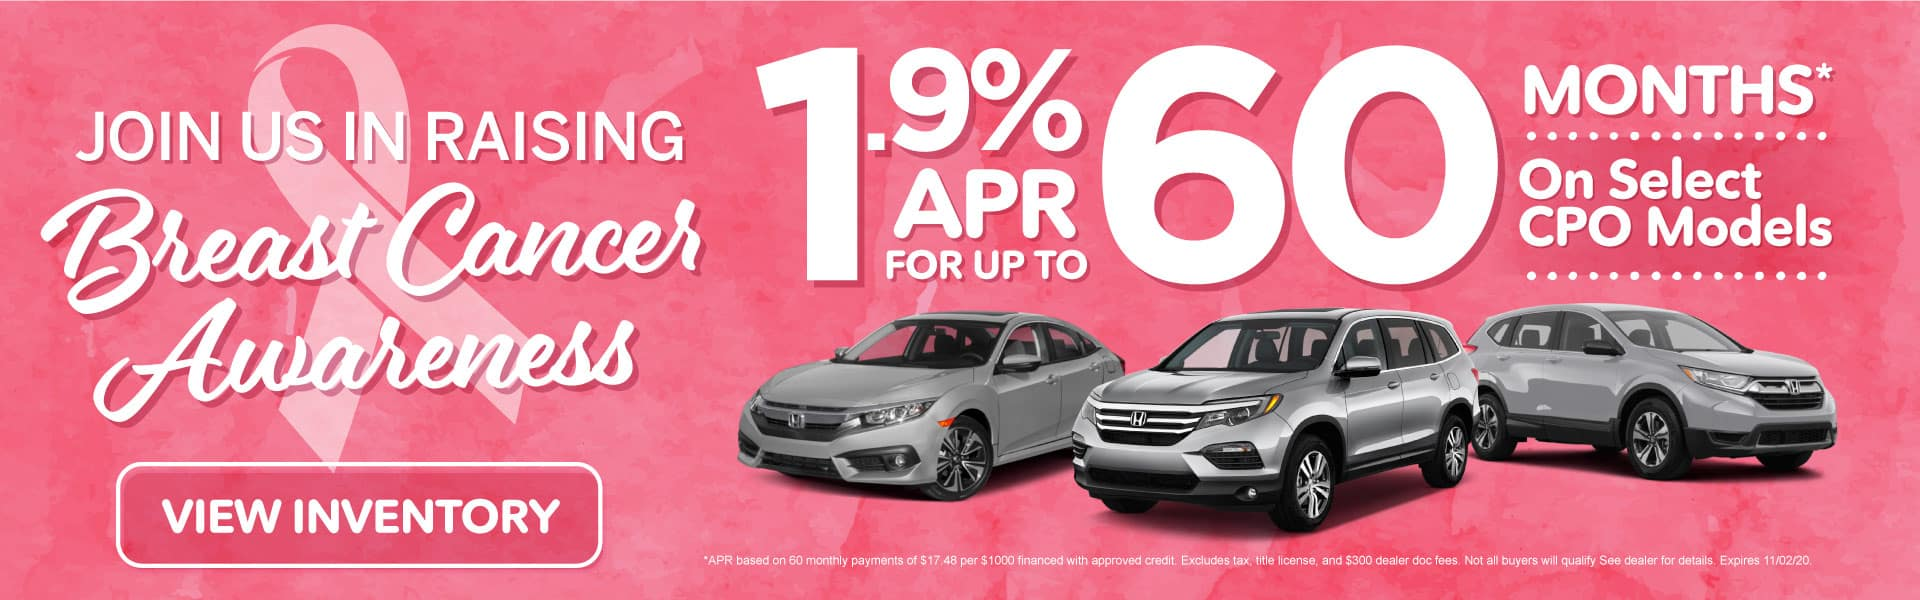 1.9% APR for up to 60 months on select CPO models | Click to View Inventory